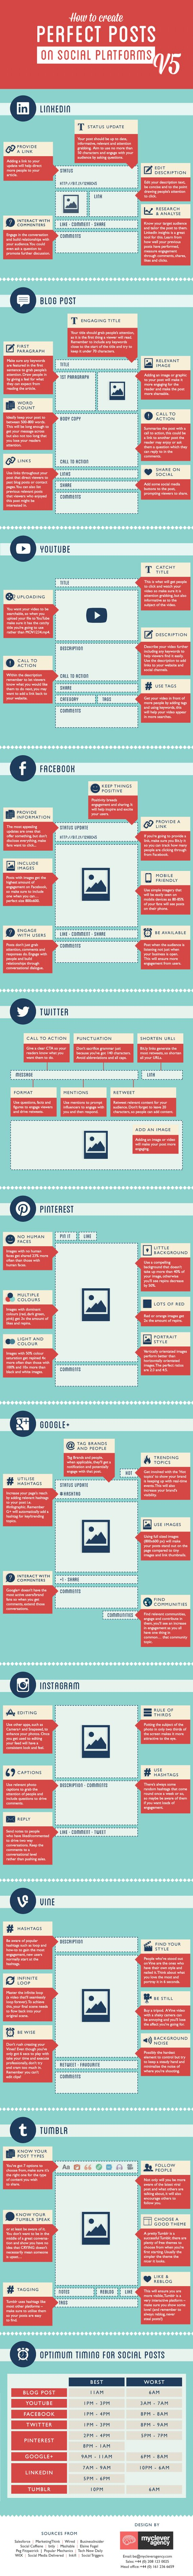 Cheat sheet for creating the best social media campaigns ever. #infographic